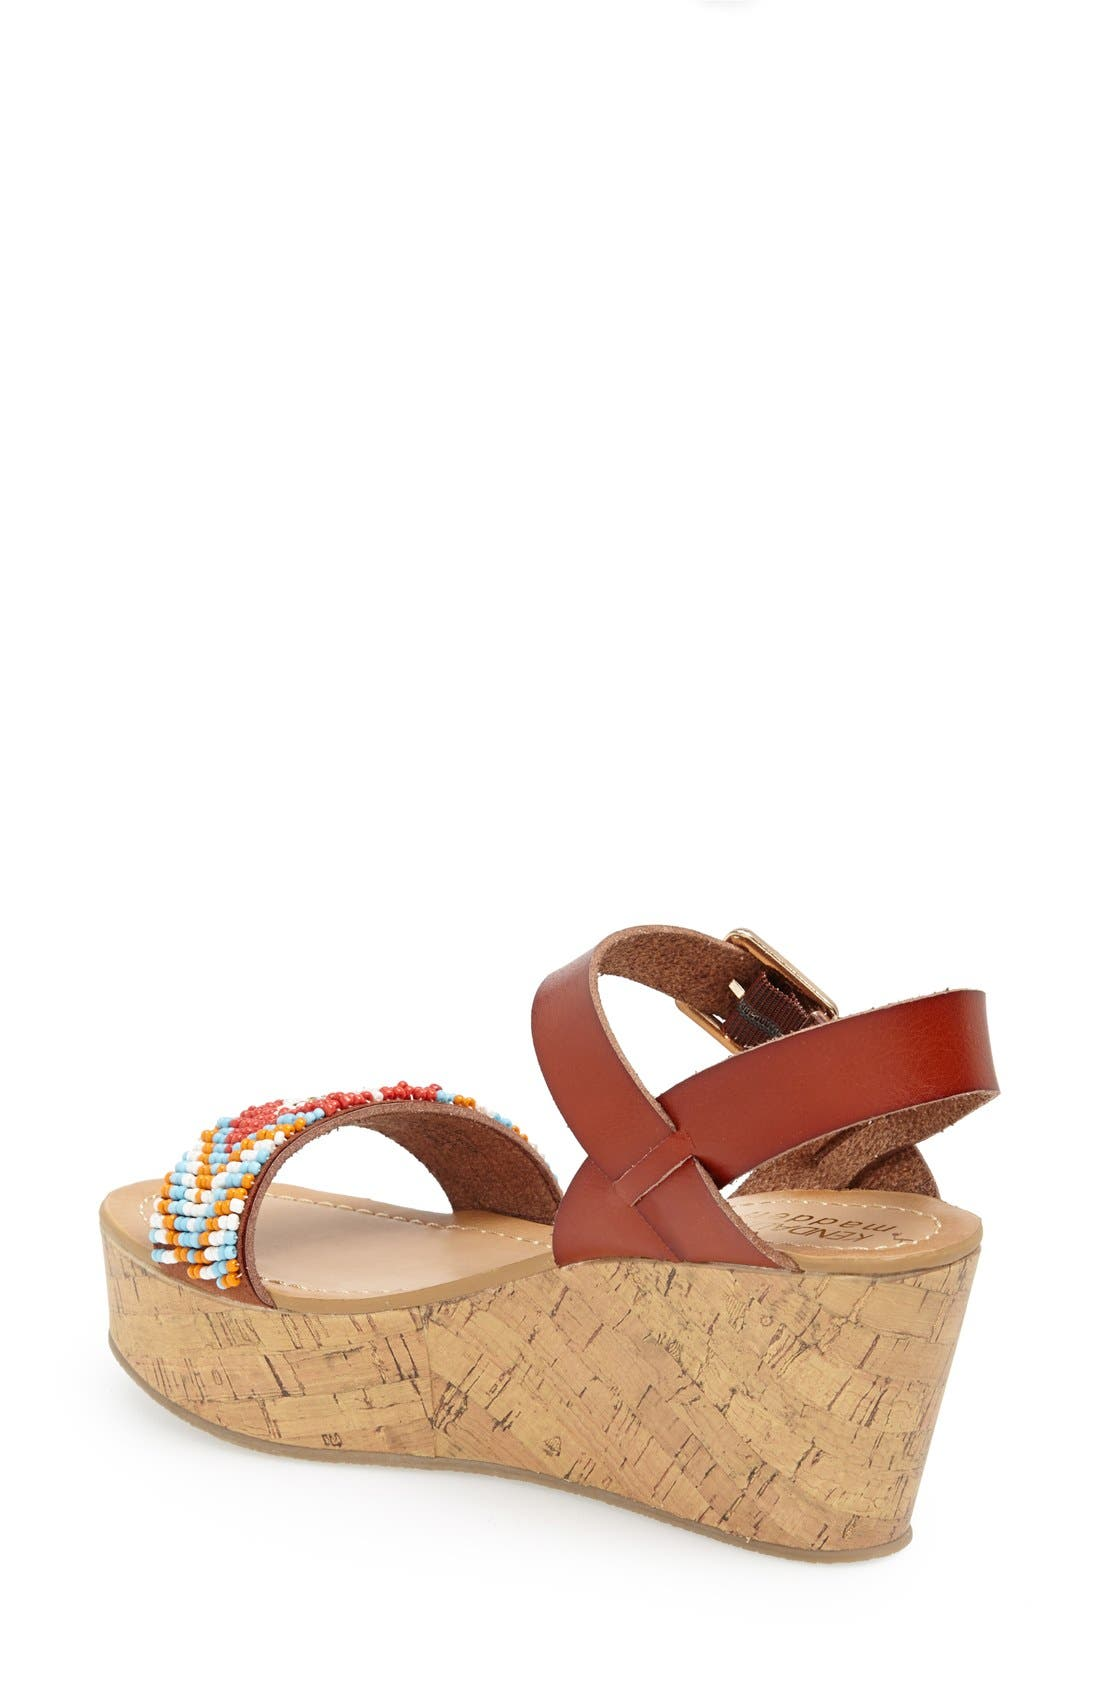 Alternate Image 2  - KENDALL + KYLIE Madden Girl 'Avaalon' Wedge Sandal (Women)